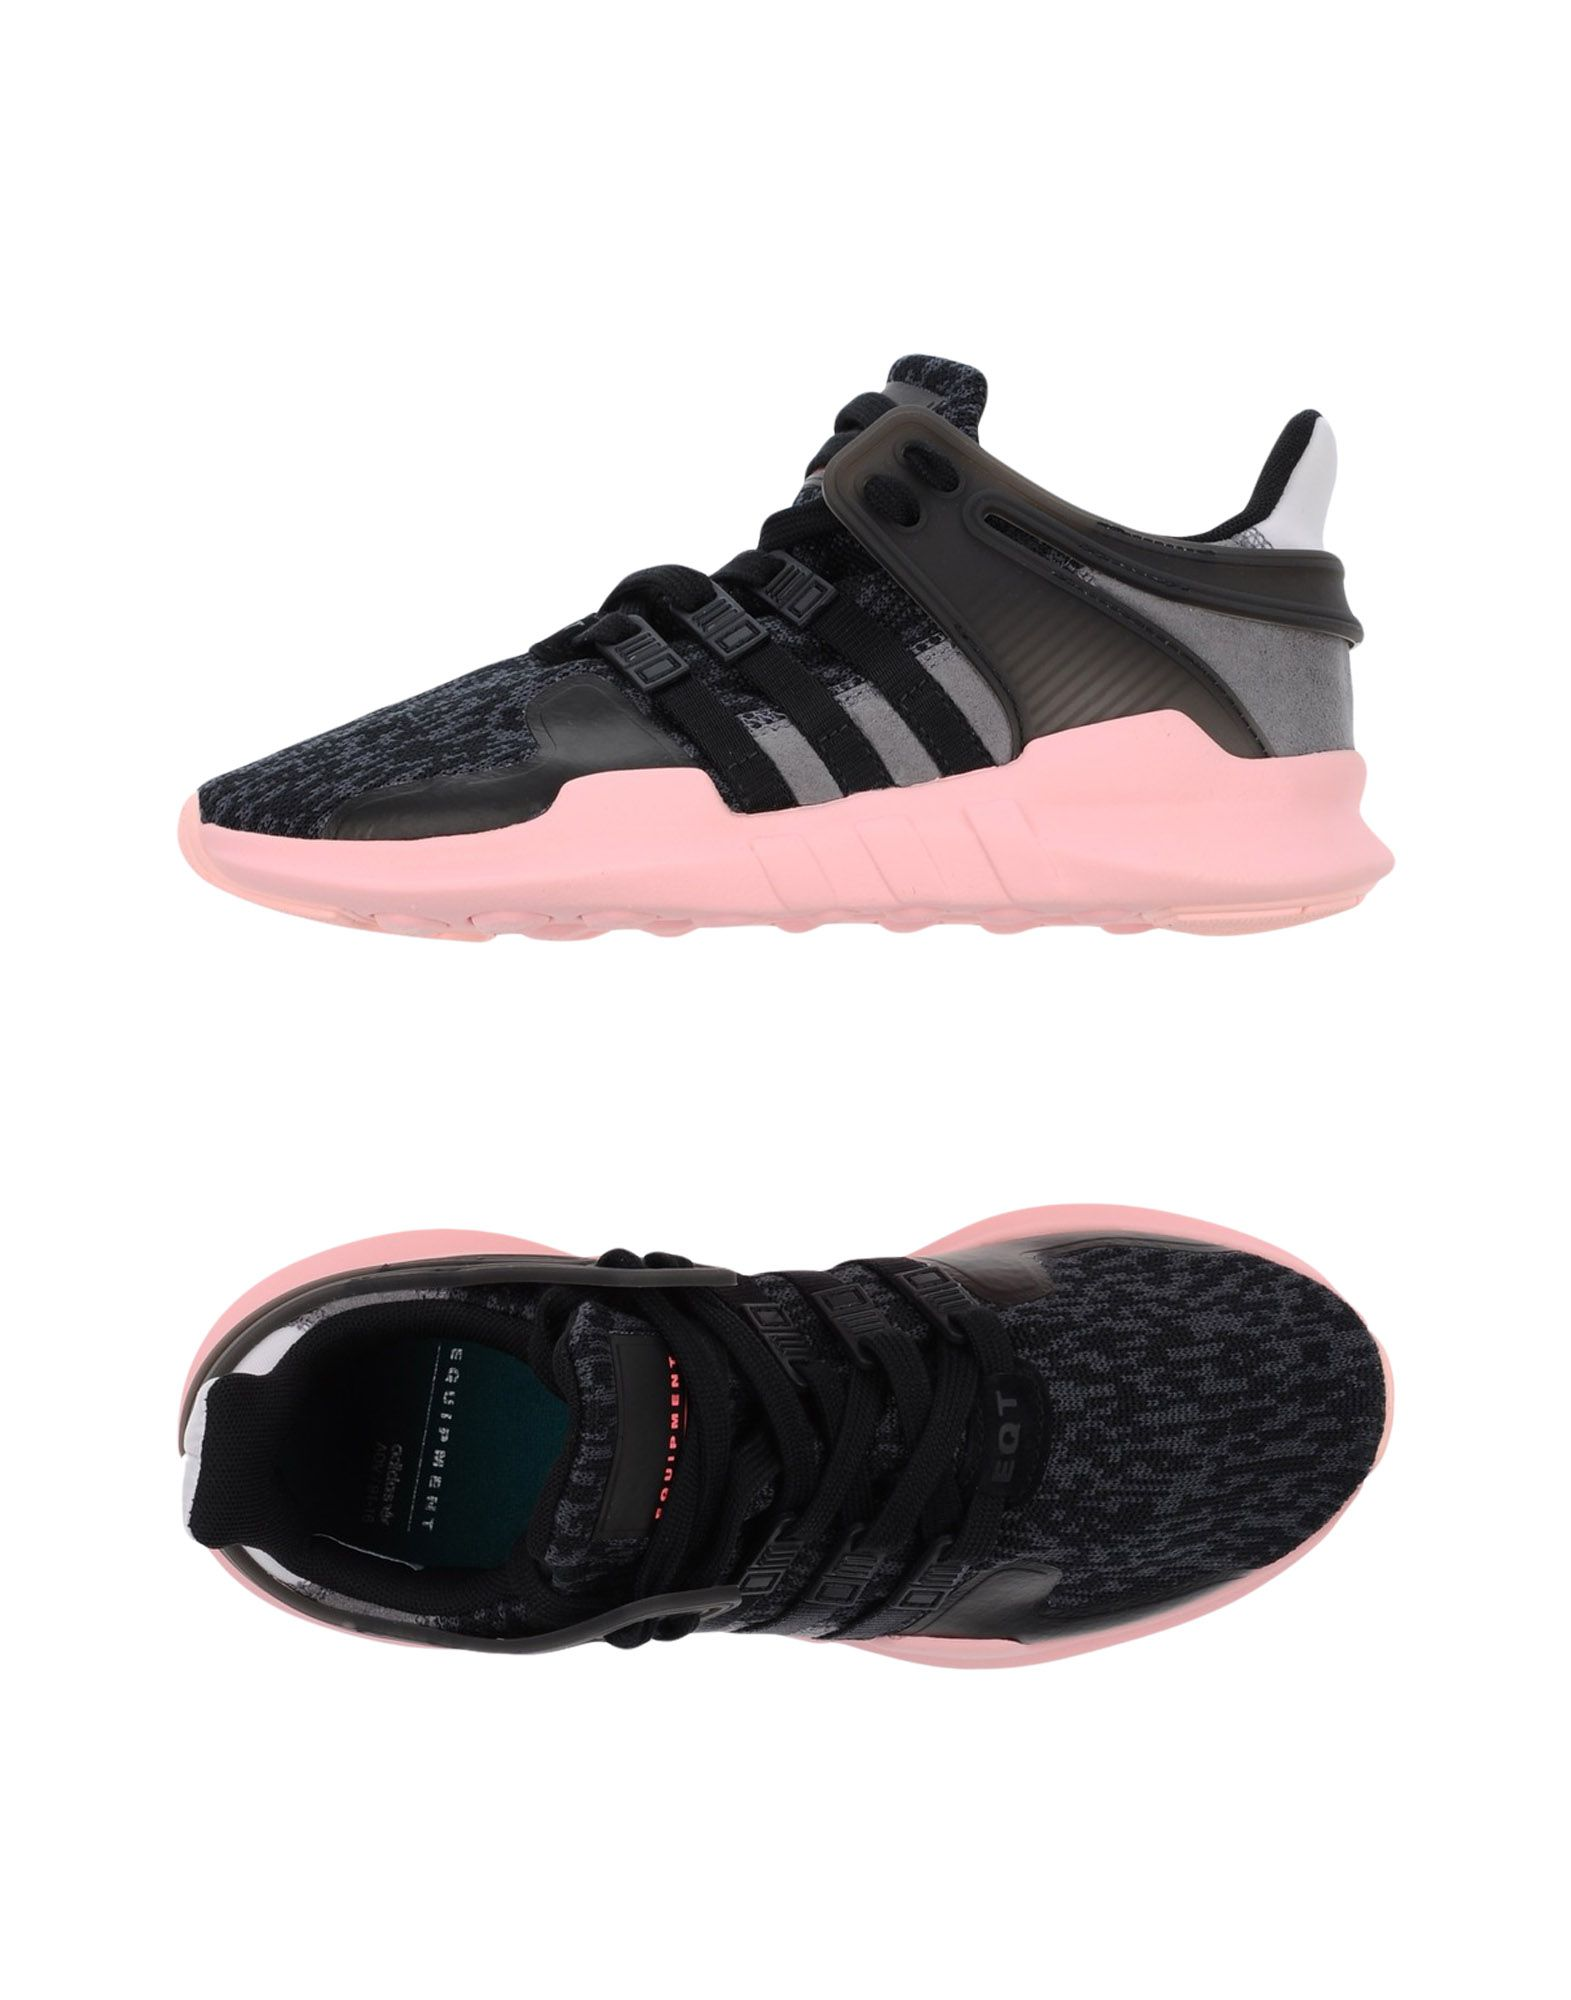 Adidas Originals Sneakers - Women Adidas  Originals Sneakers online on  Adidas United Kingdom - 11335452AJ da74a2